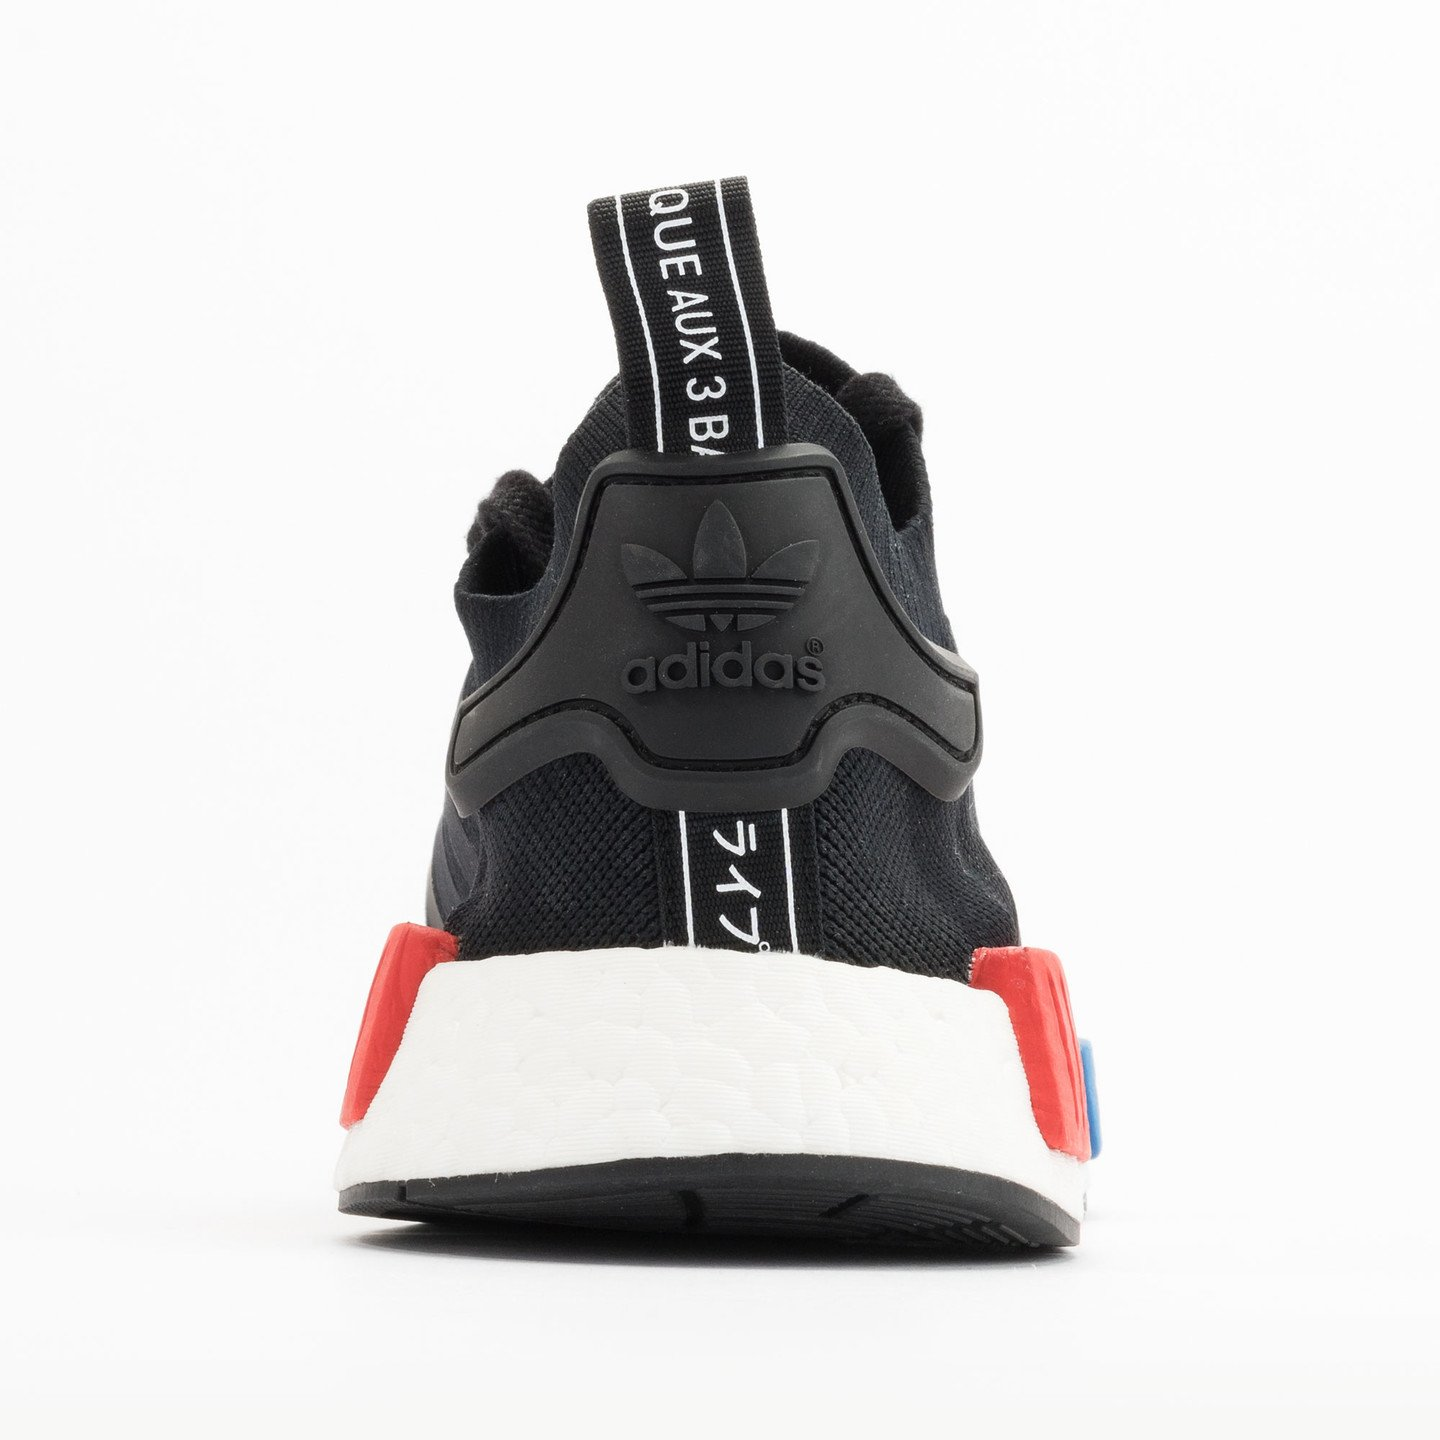 Adidas NMD Runner PK Primeknit Black / Red / Blue / White S79168-38